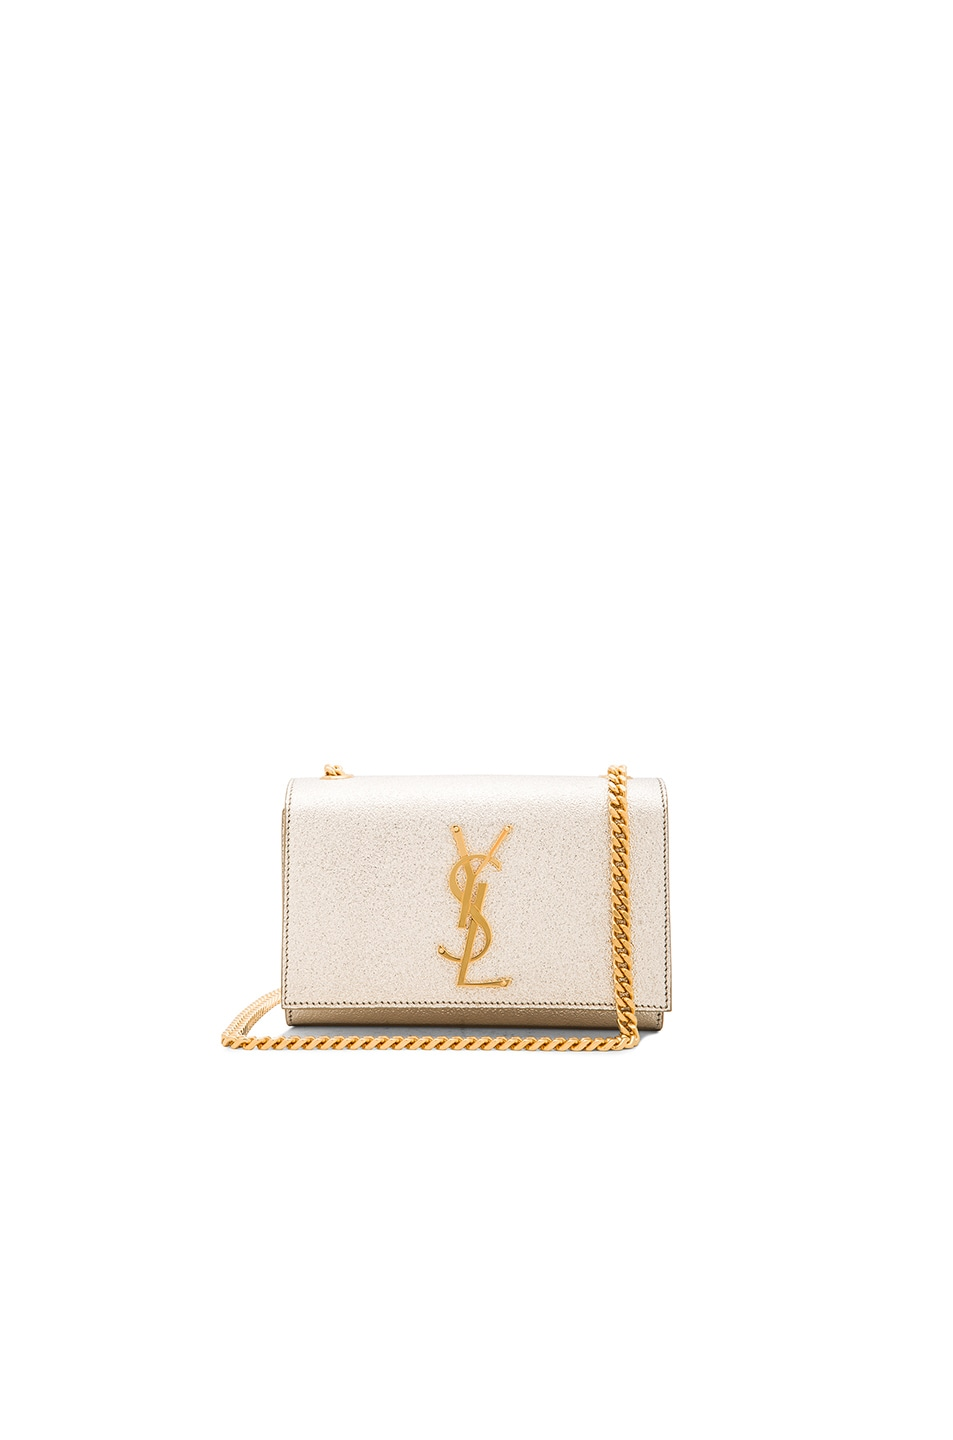 Image 1 of Saint Laurent Small Monogramme Chain Bag in Pale Gold